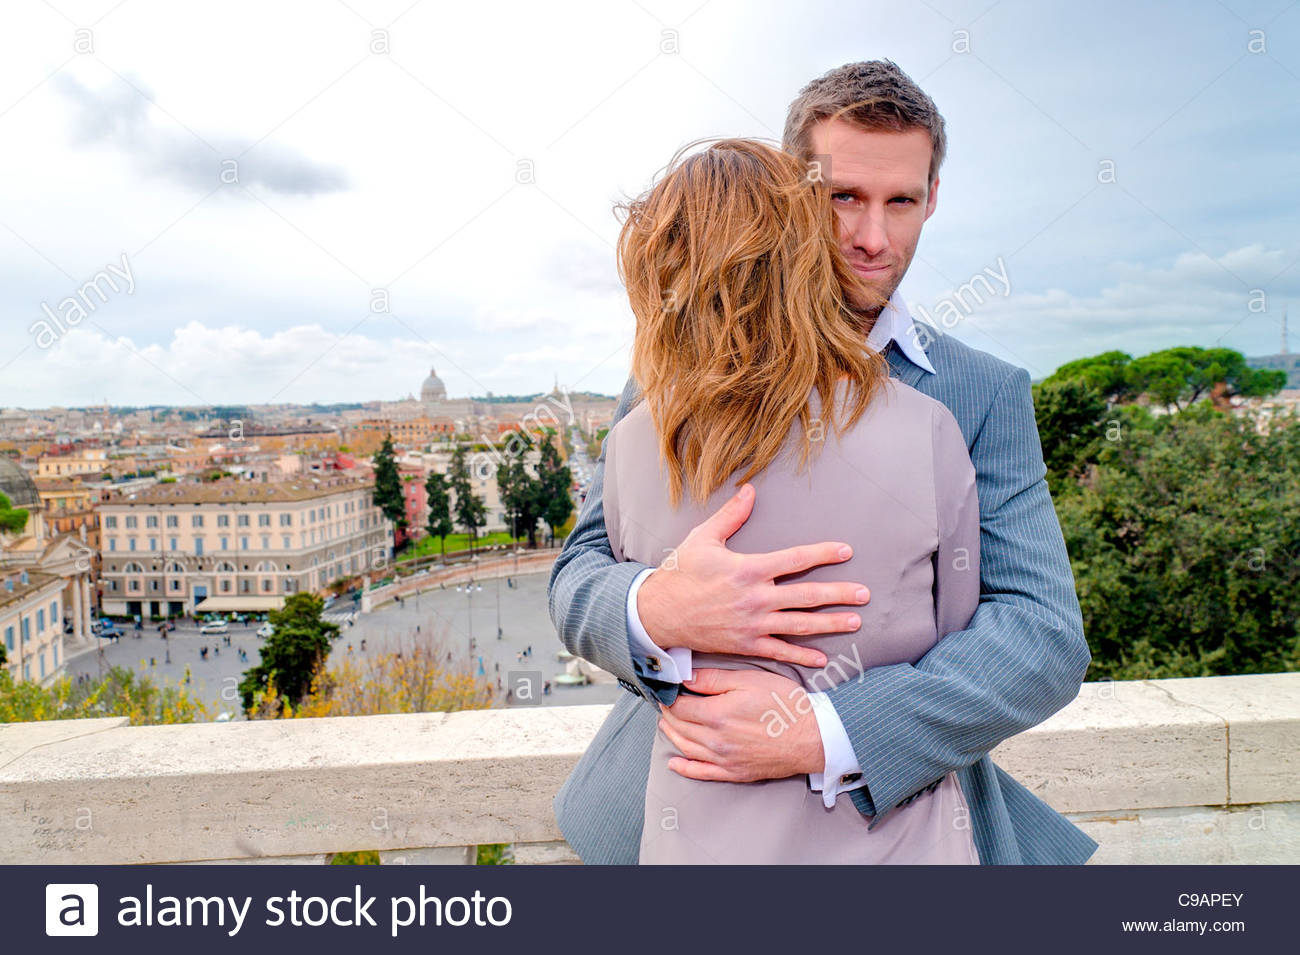 Couple on the terrace of Parco del Pincio - Stock Image